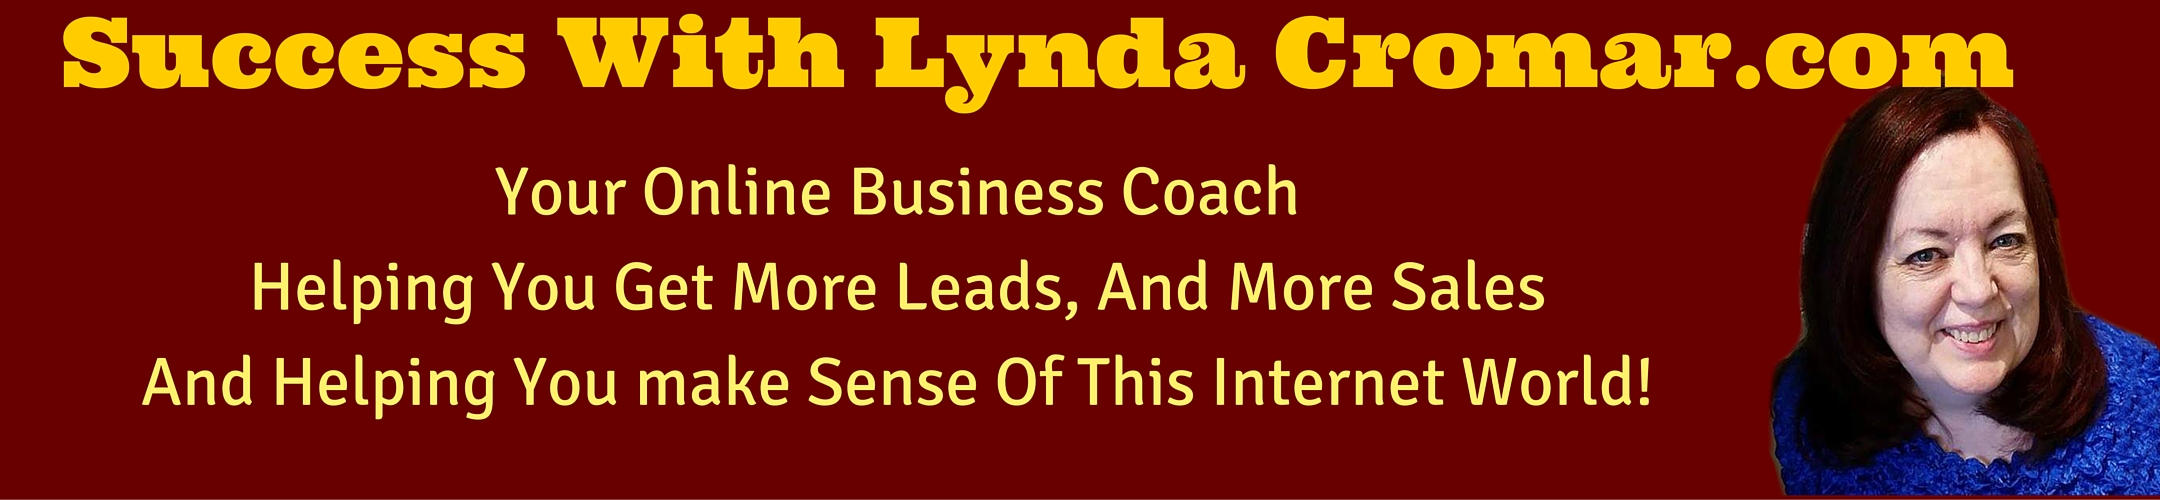 Success With Lynda Cromar Is Real Strategies For Lead Generation For The Baby Boomer Network Marketer